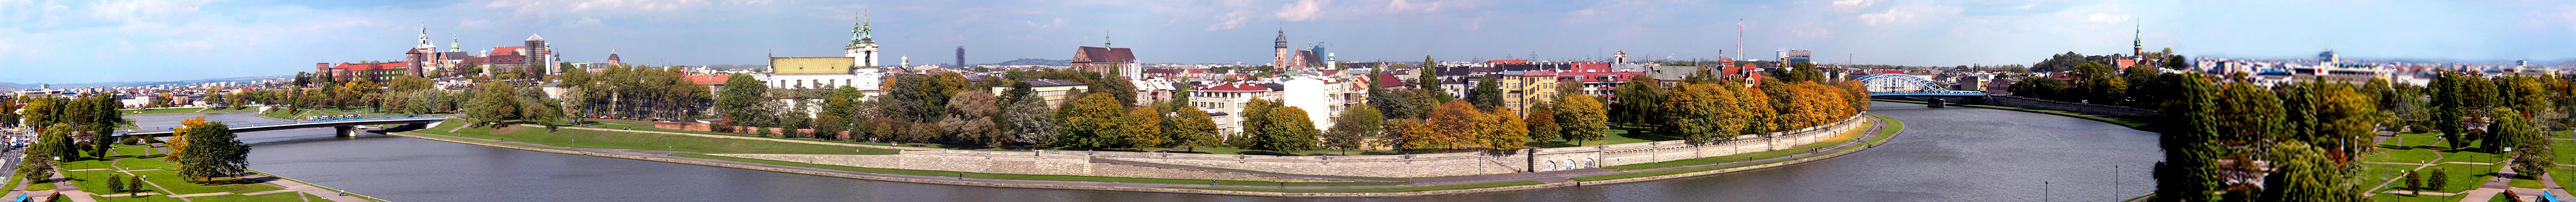 Cityscape of Kraków, Poland's former capital